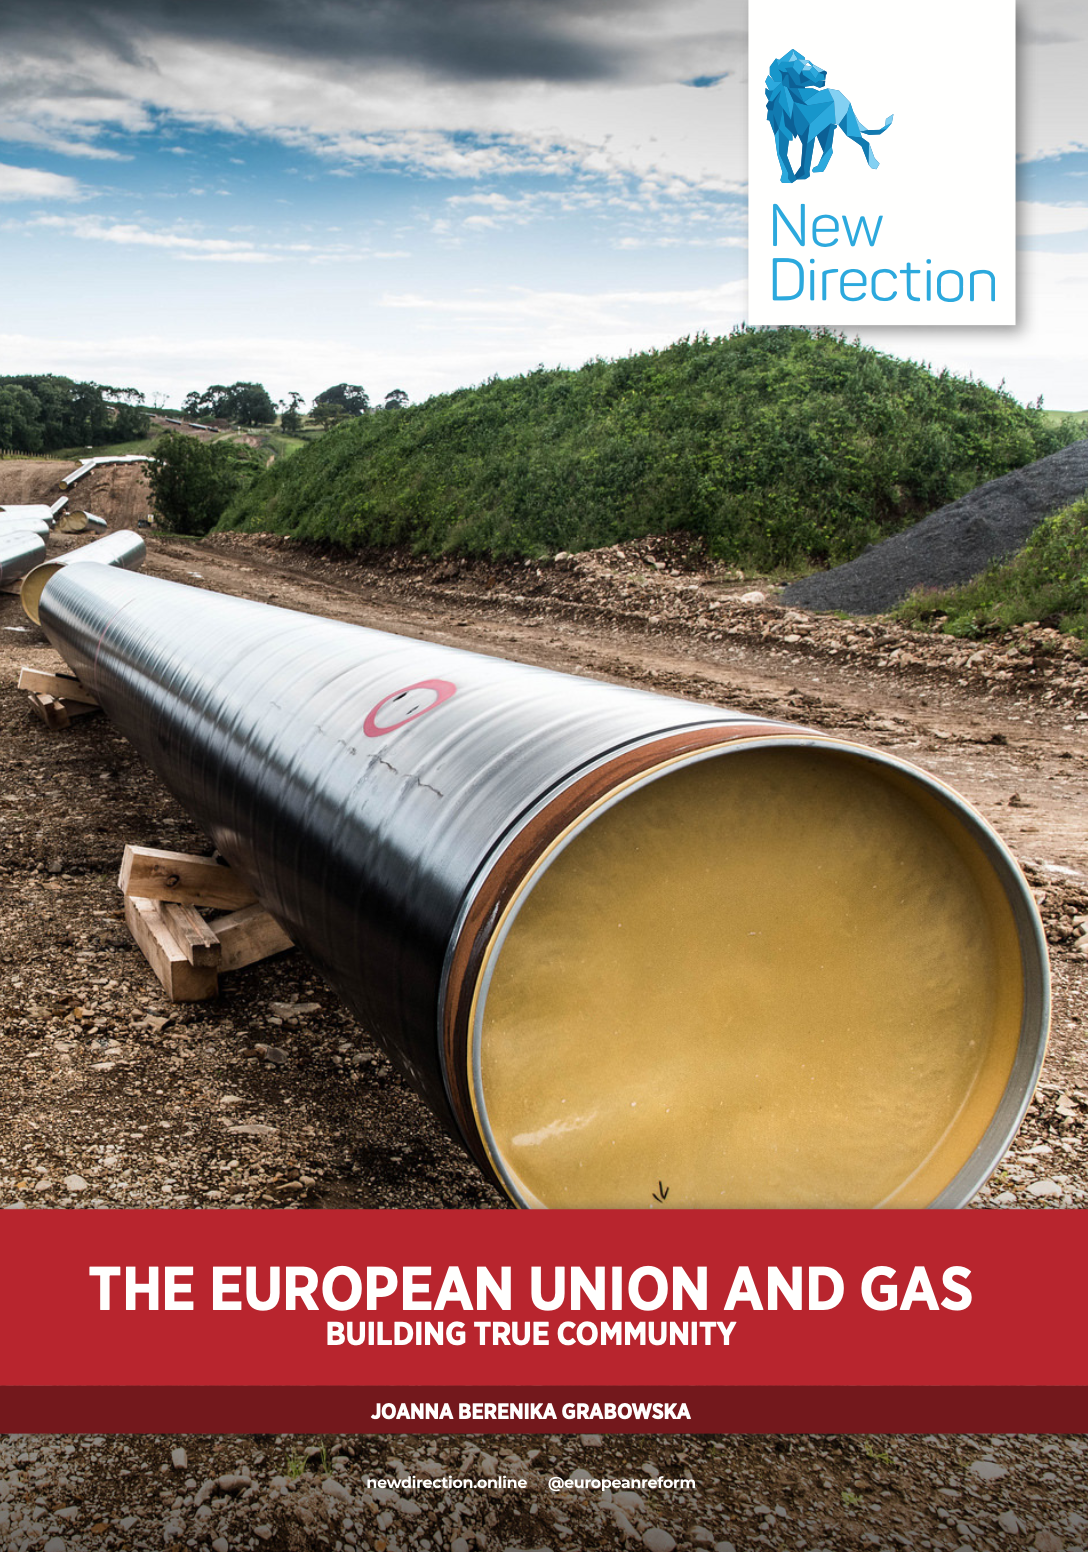 THE EUROPEAN UNION AND GAS BUILDING TRUE COMMUNITY